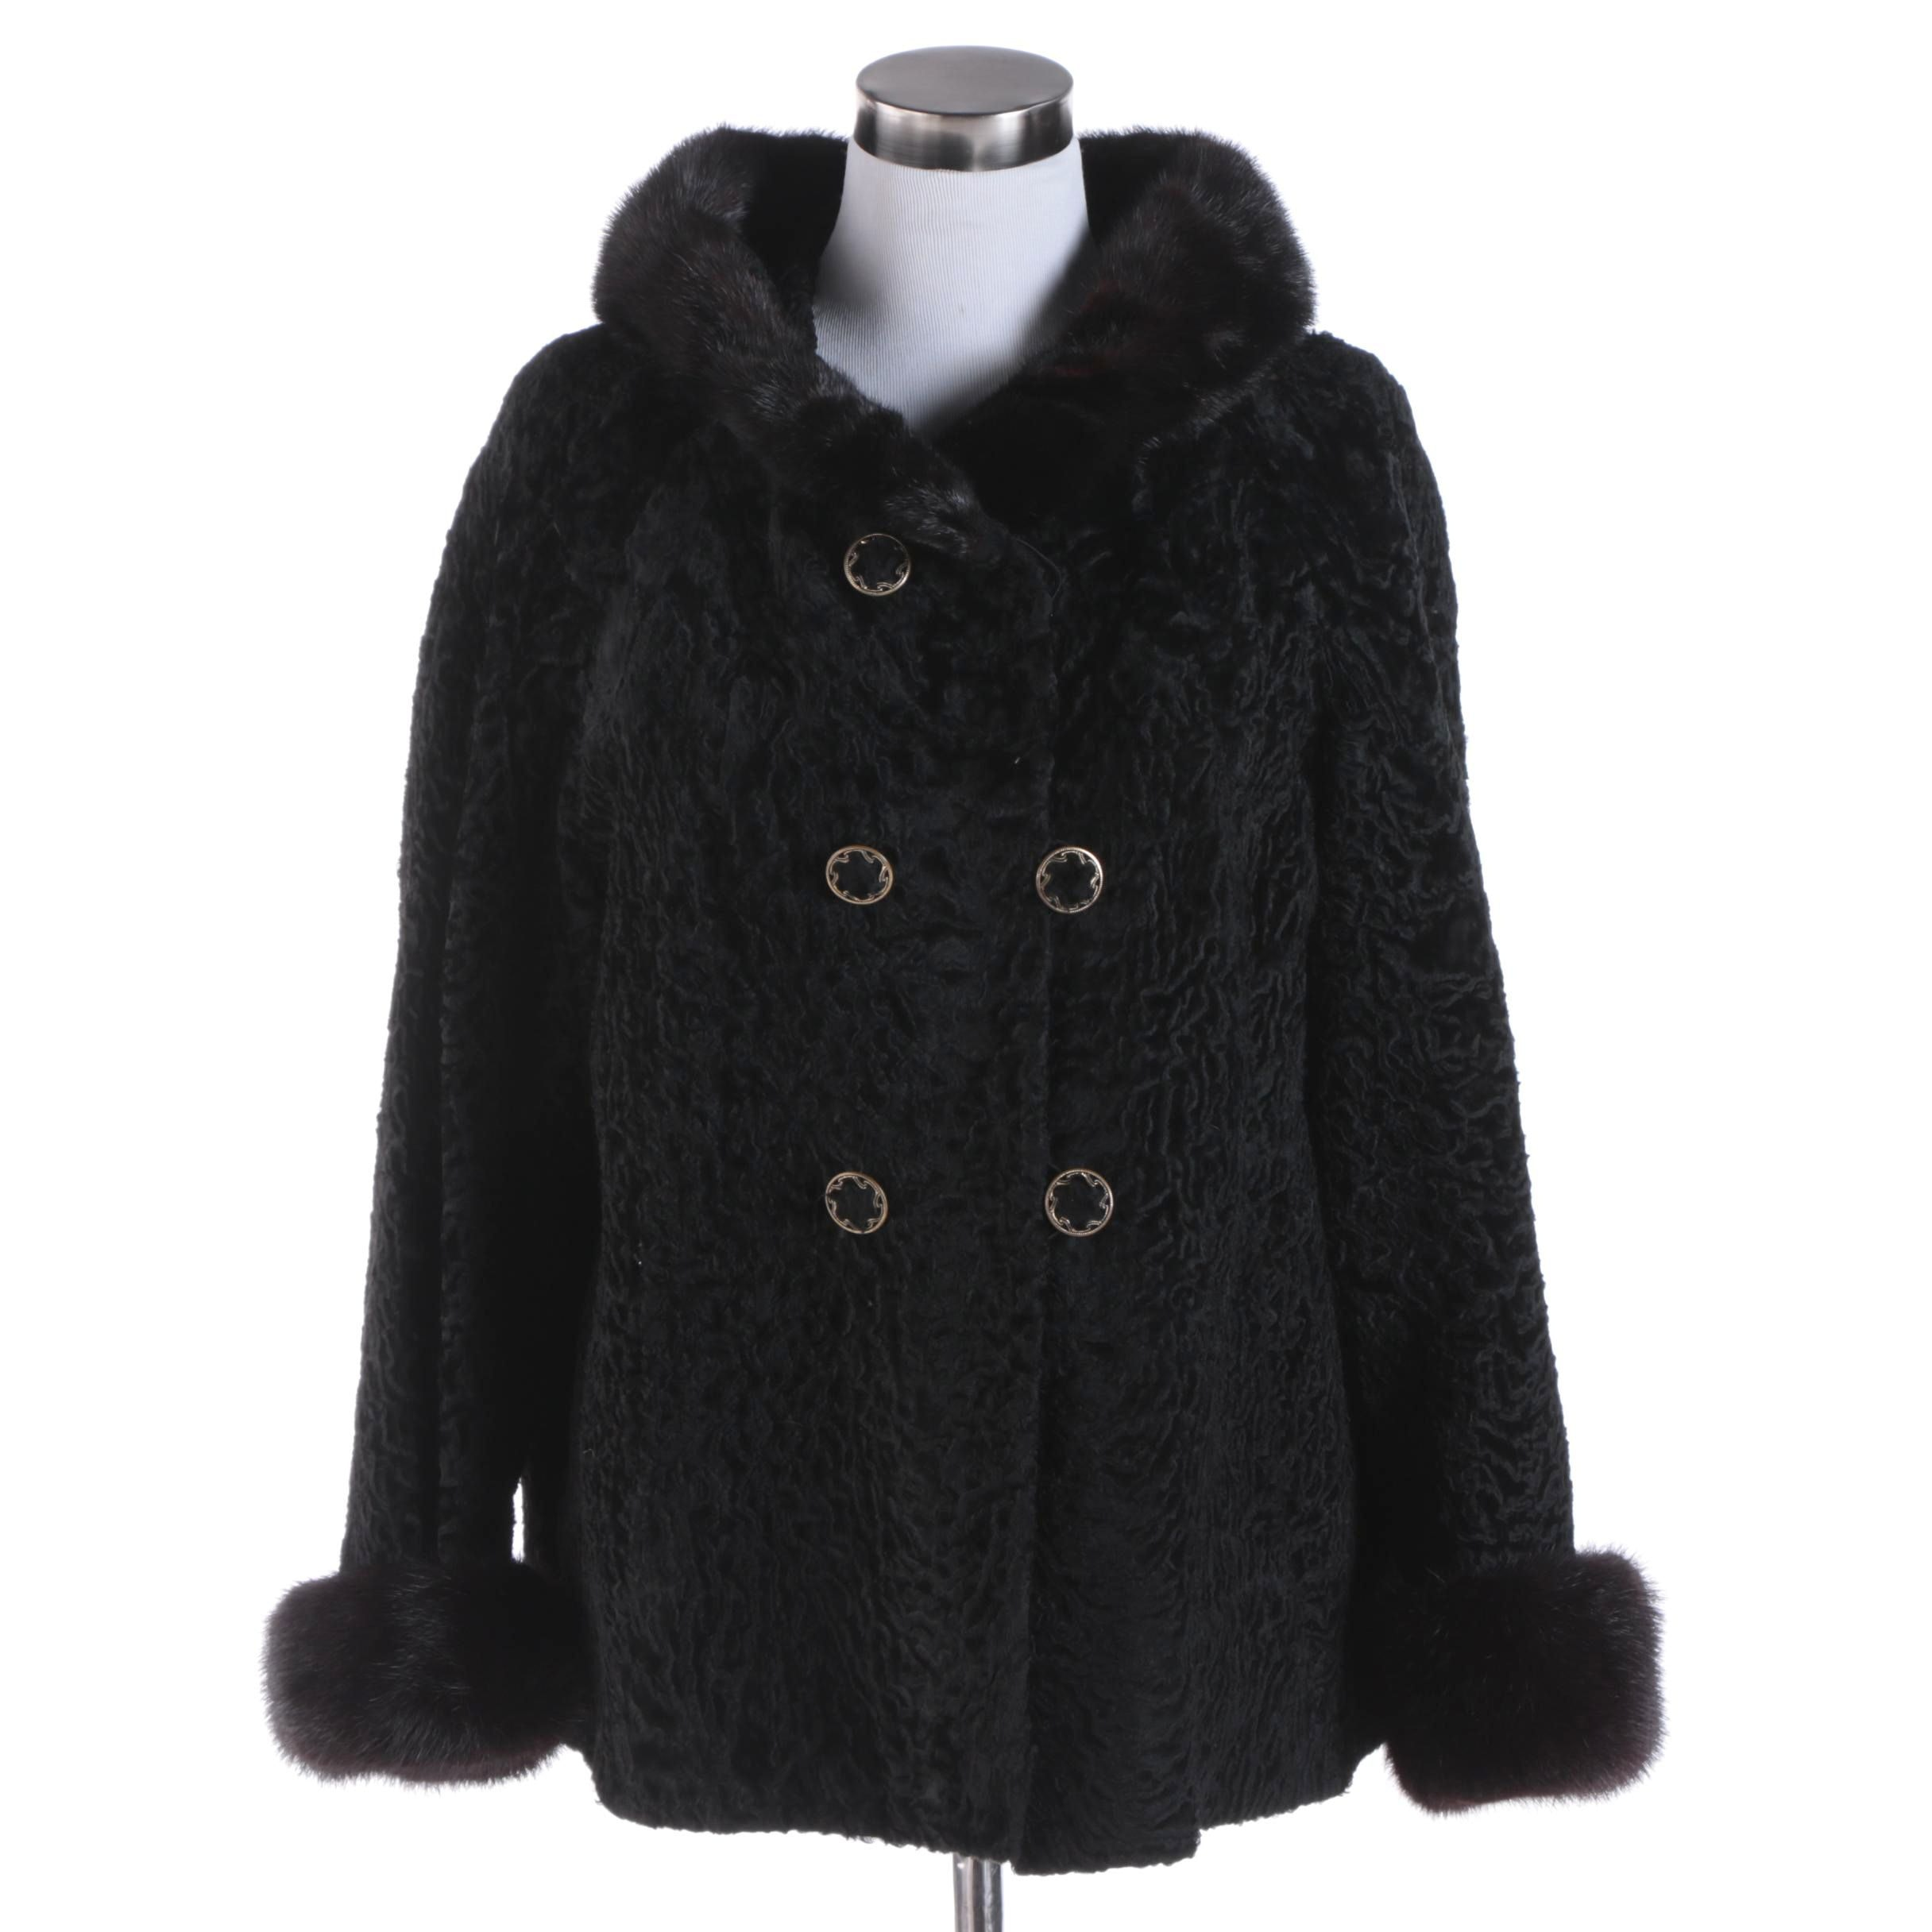 Women's Vintage Black Persian Lamb Fur Double-Breasted Jacket with Mink Fur Trim